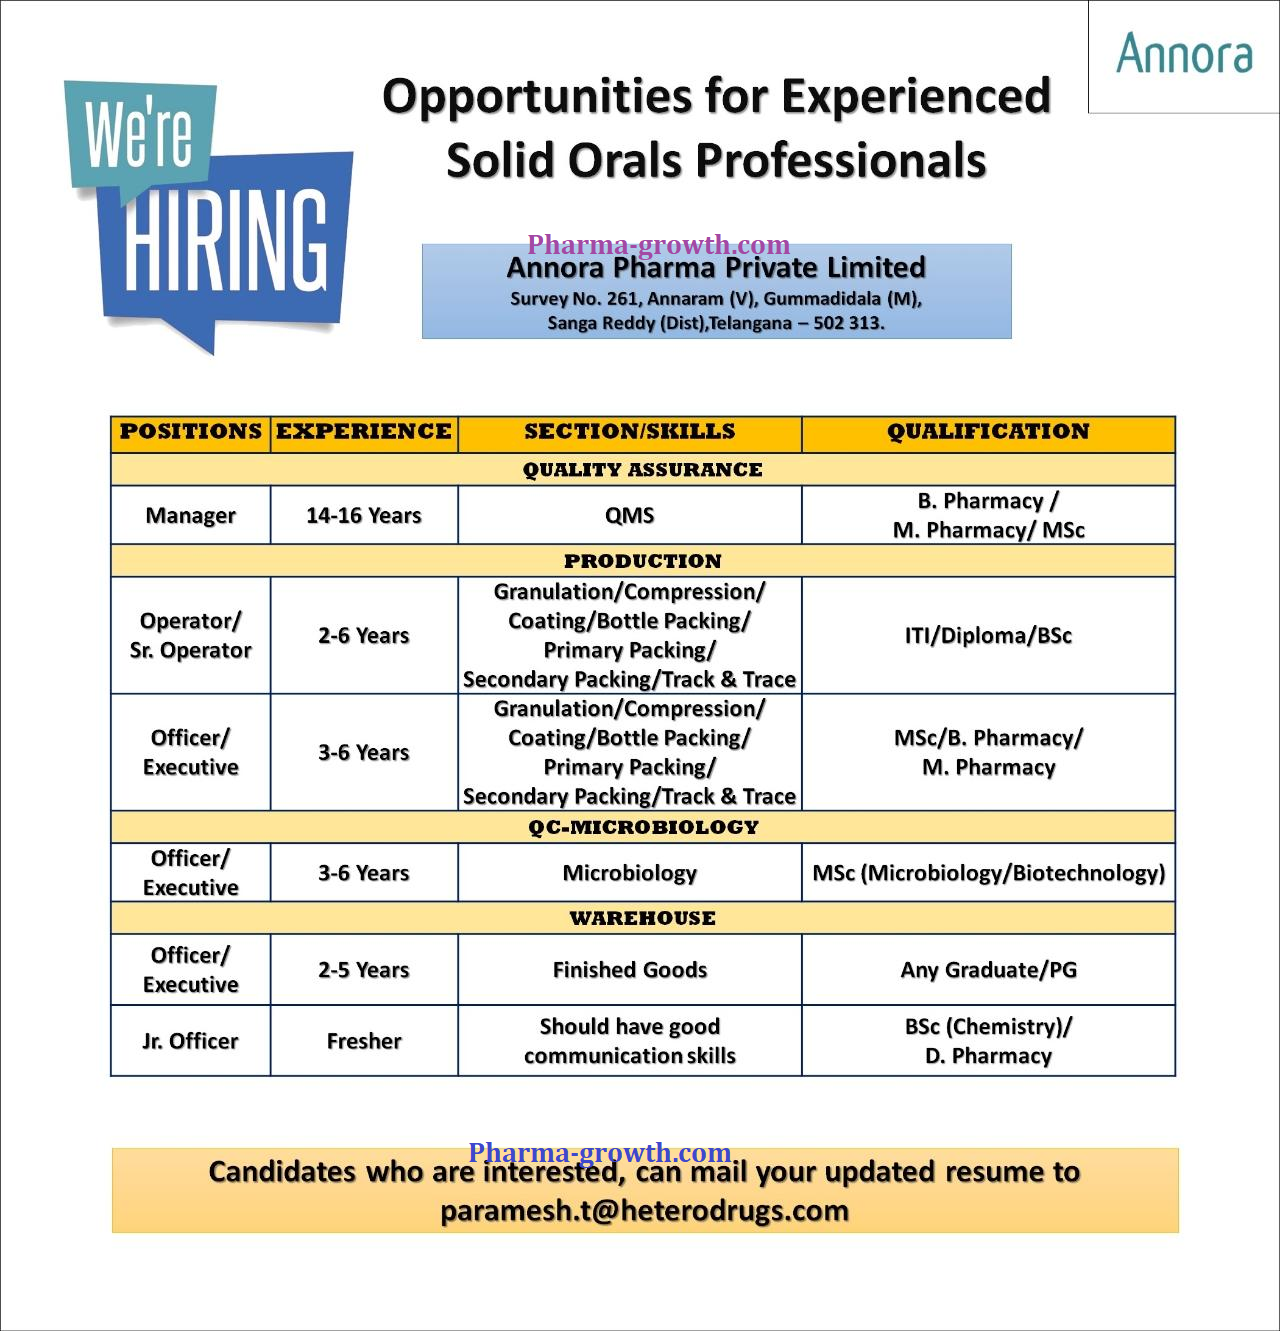 Annora Pharma - Urgently Job Opening for Fresher